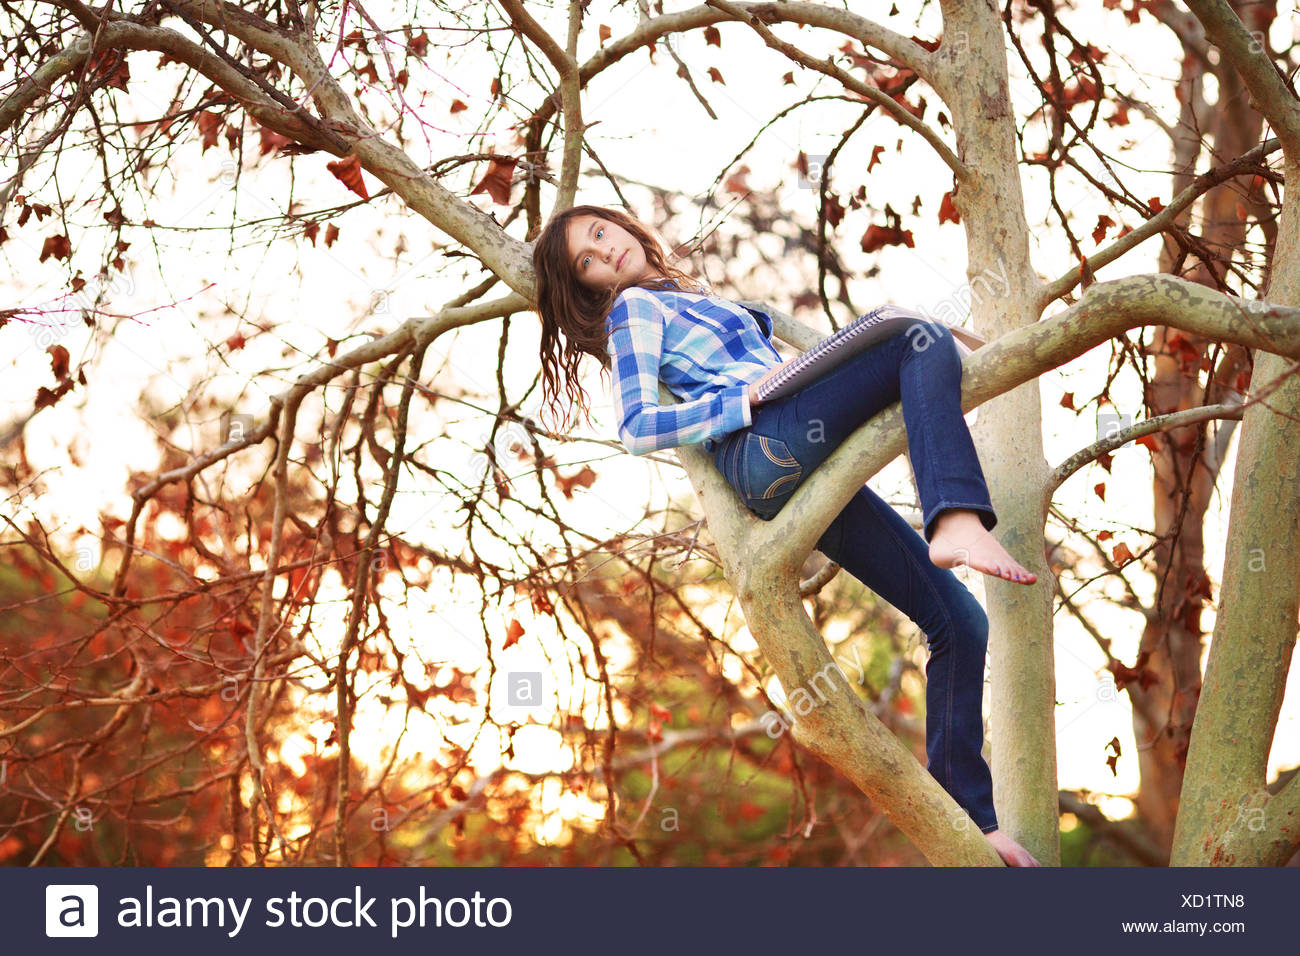 Teenage girl sitting in a tree avec feuille Photo Stock